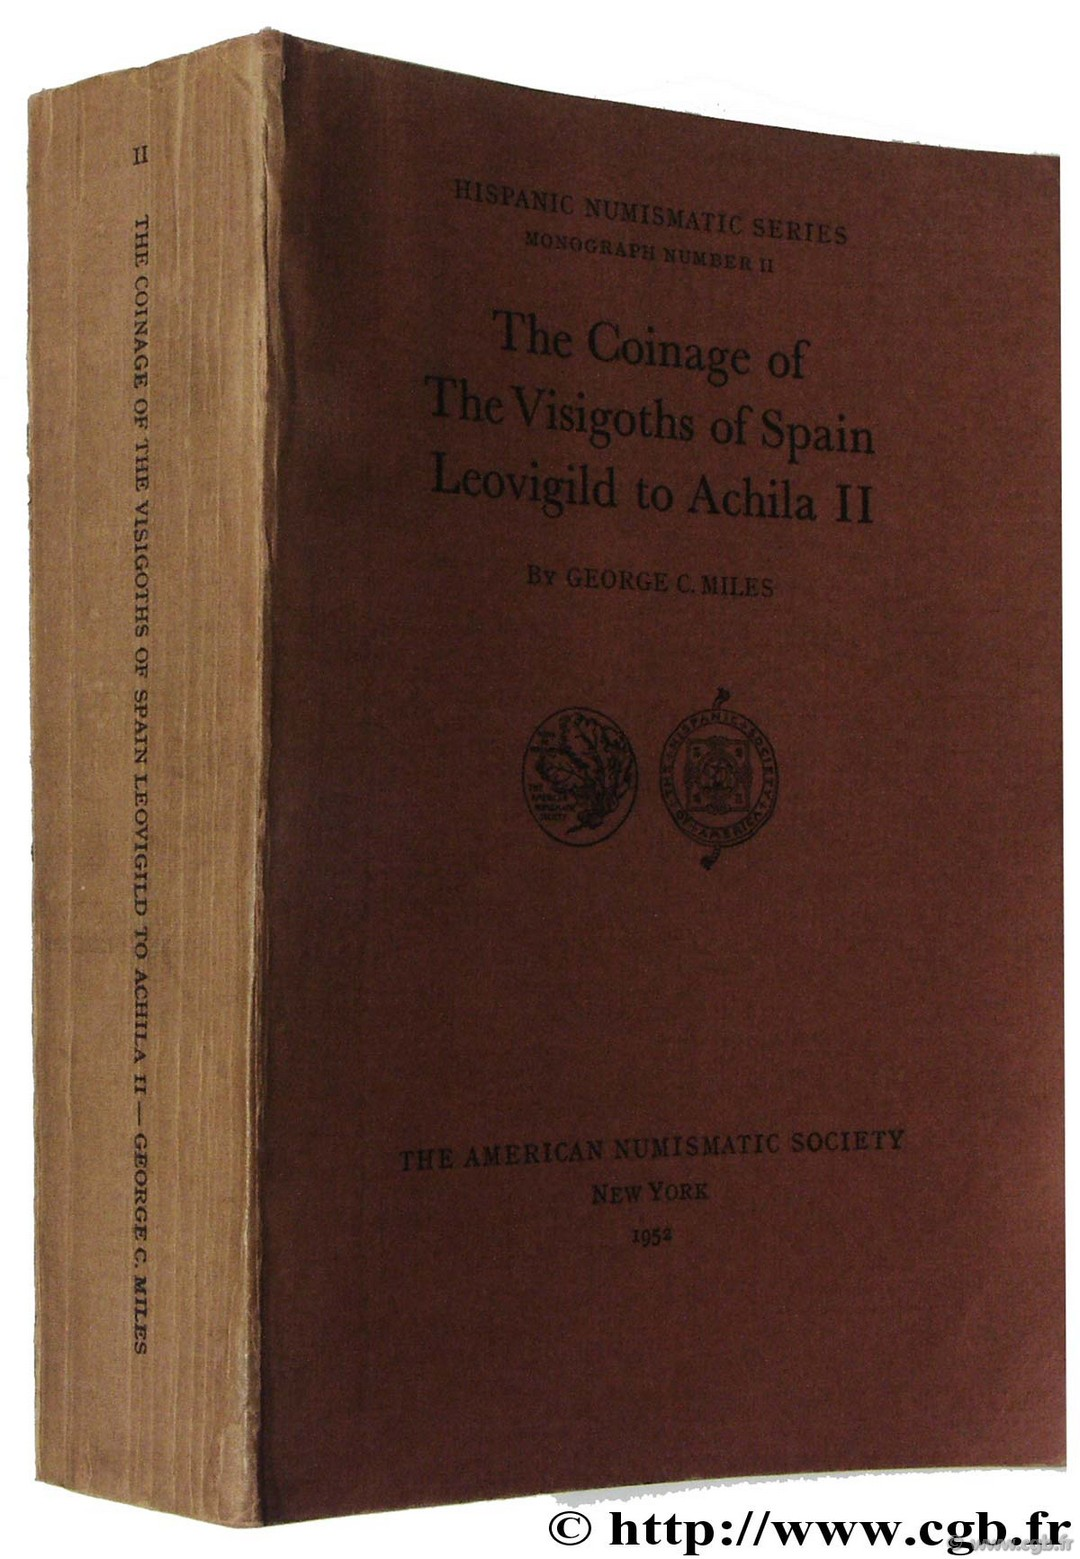 The Coinage of the Visigoths of Spain Leovigild to Achila, Hispanic Numismatic Series, II, The American Numismatic Society MILES G.-C.